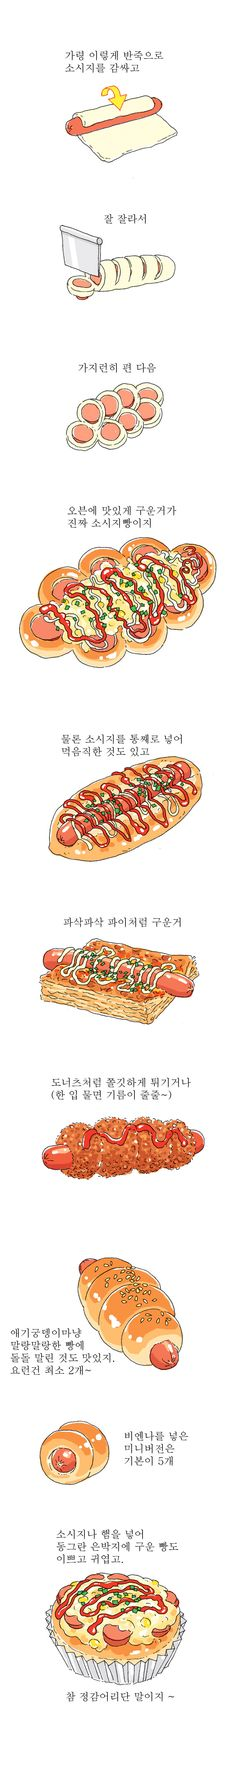 오무라이스 잼잼 99화 등교길에 소시지빵이 있더라 | Daum 만화속세상 Easy Cooking, Cooking Recipes, Pastry And Bakery, Mindful Eating, Good Enough To Eat, Food Drawing, Food Illustrations, Design Reference, Food Design